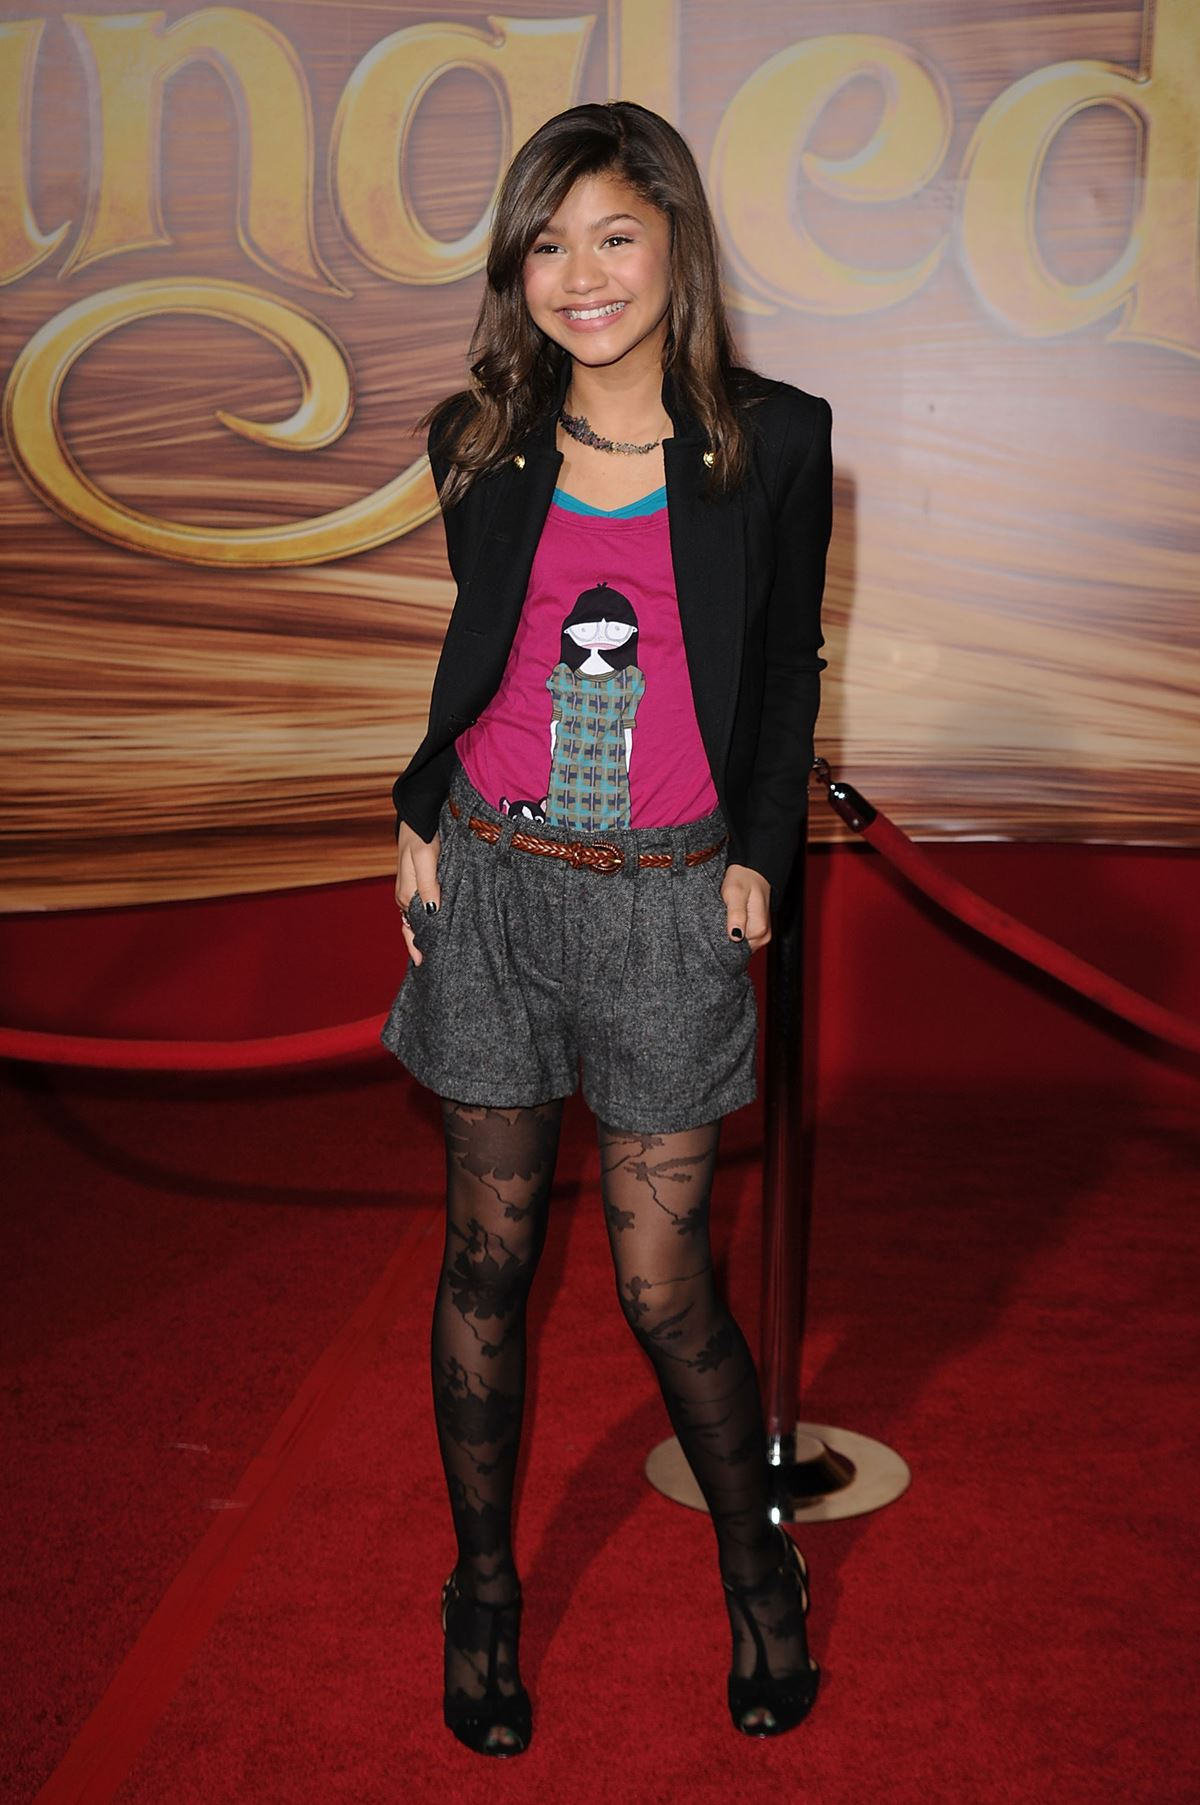 She'd only been on everyone's radar for less than a year but already was already getting invited to all the events, such as the premiere of *Tangled* in November 2010. Lovin the tights and shorts combo, Z.